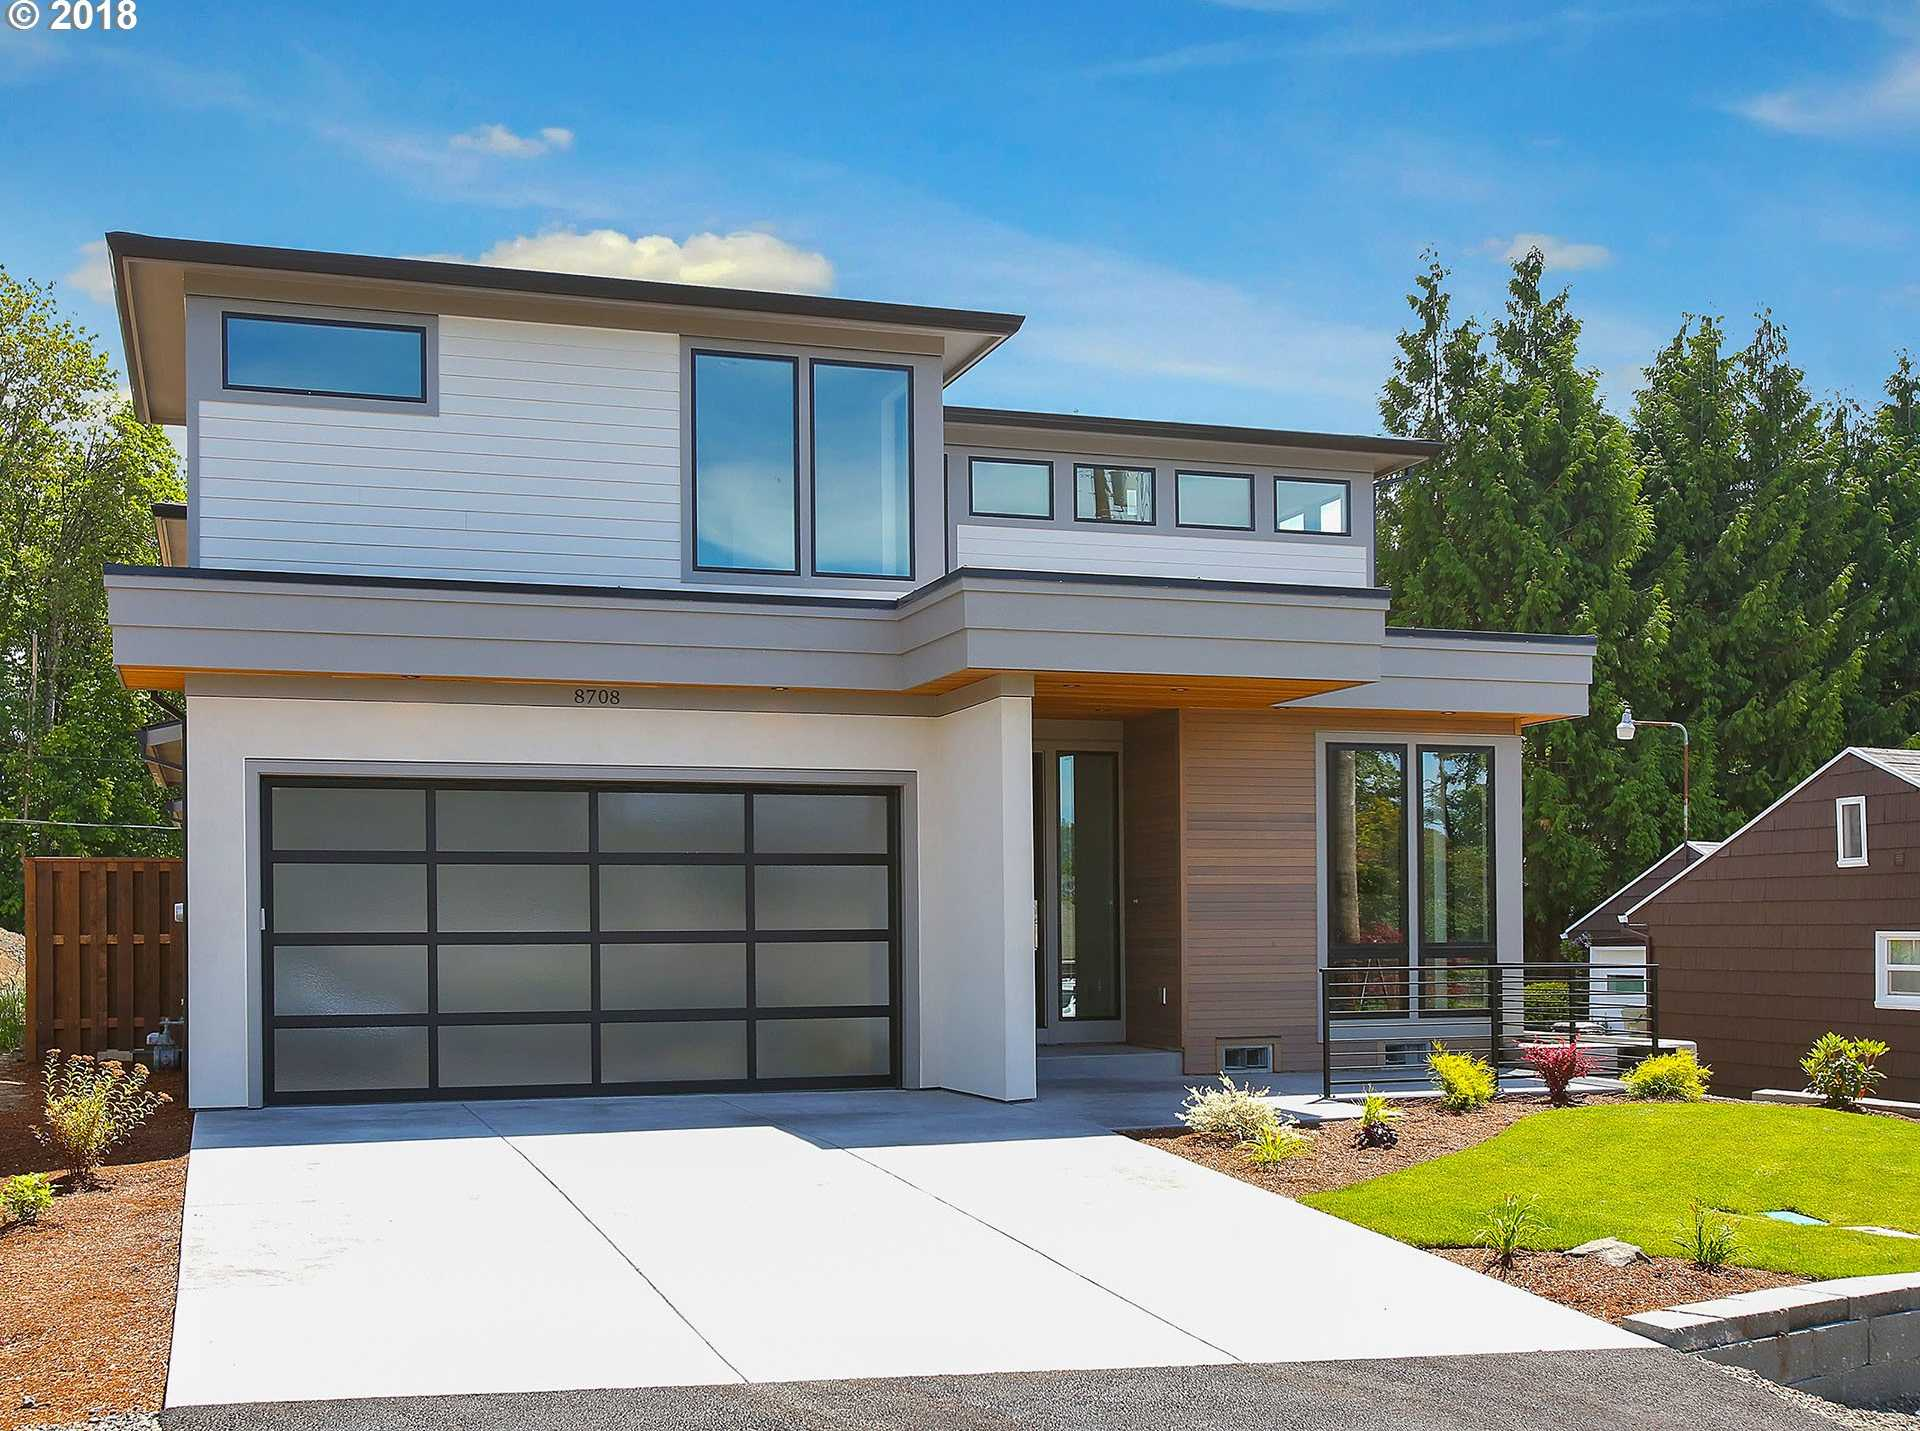 $949,900 - 4Br/3Ba -  for Sale in Nw Heights/cedar Mill, Portland